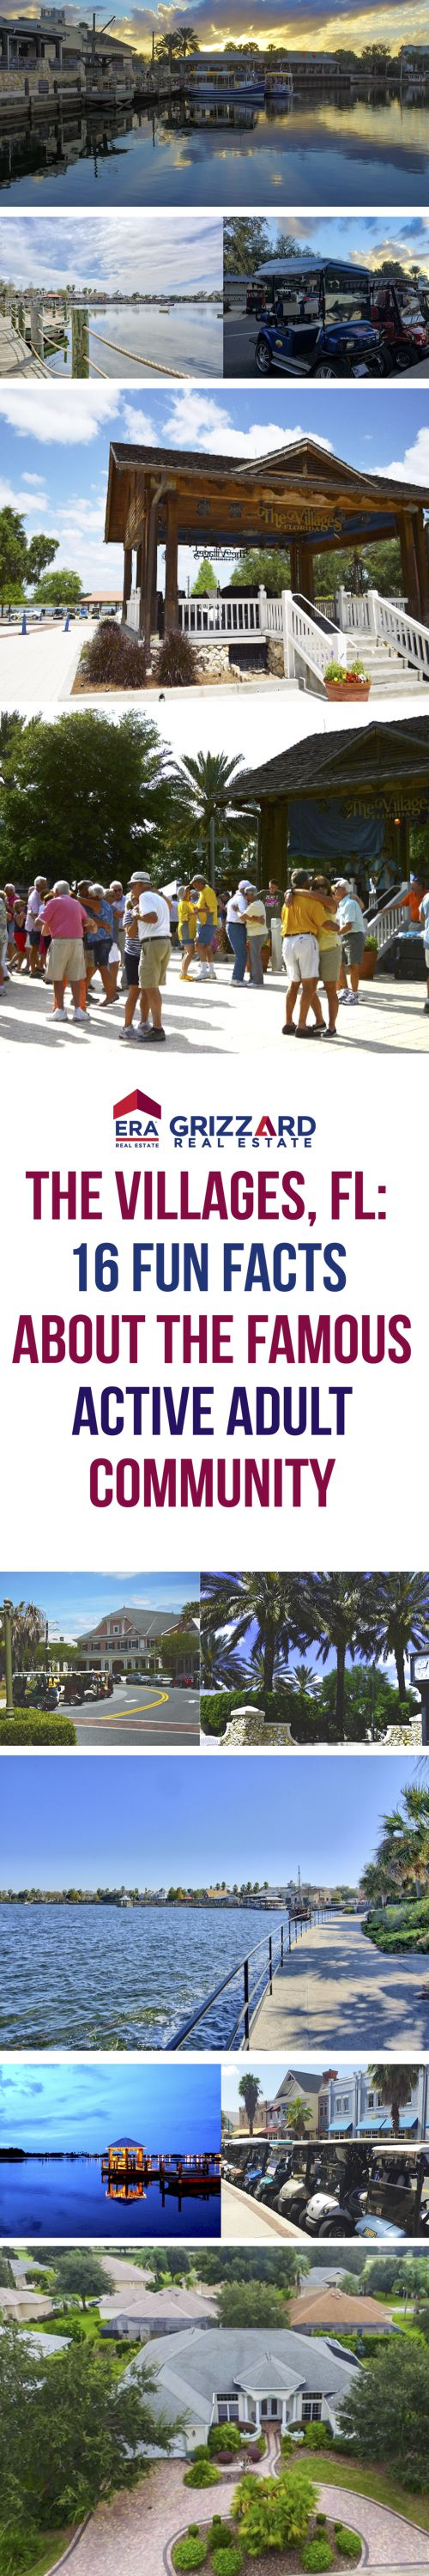 The Villages, Florida is one of the most well known 55 Plus Communities in the world and one of the best places to retire in Florida. The friendly atmosphere, endless activities, and nightly entertainment draws Active Adults from all over to this community.   Here are 16 Surprisingly Fun Facts that may explain why so many people are looking at homes for sale in The Villages, Florida!